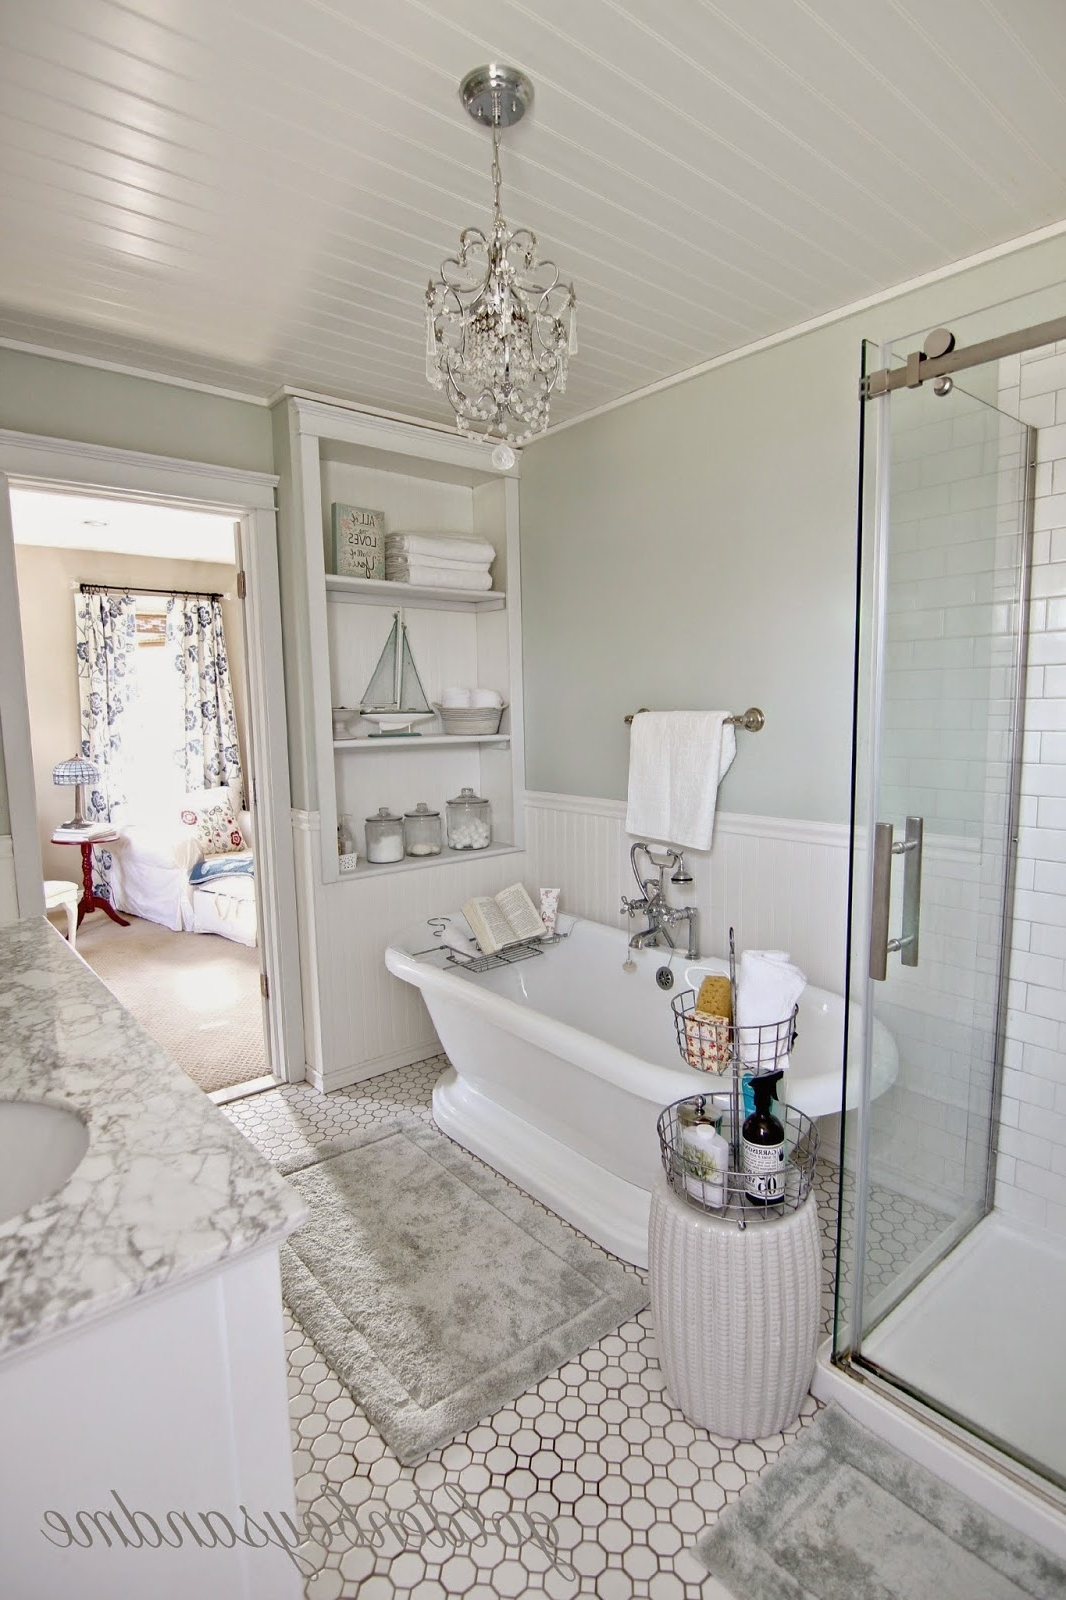 Simple Crystal Bathroom Chandelier For White Bathroom Lighting With Regard To Famous Chandelier Bathroom Lighting (View 16 of 20)